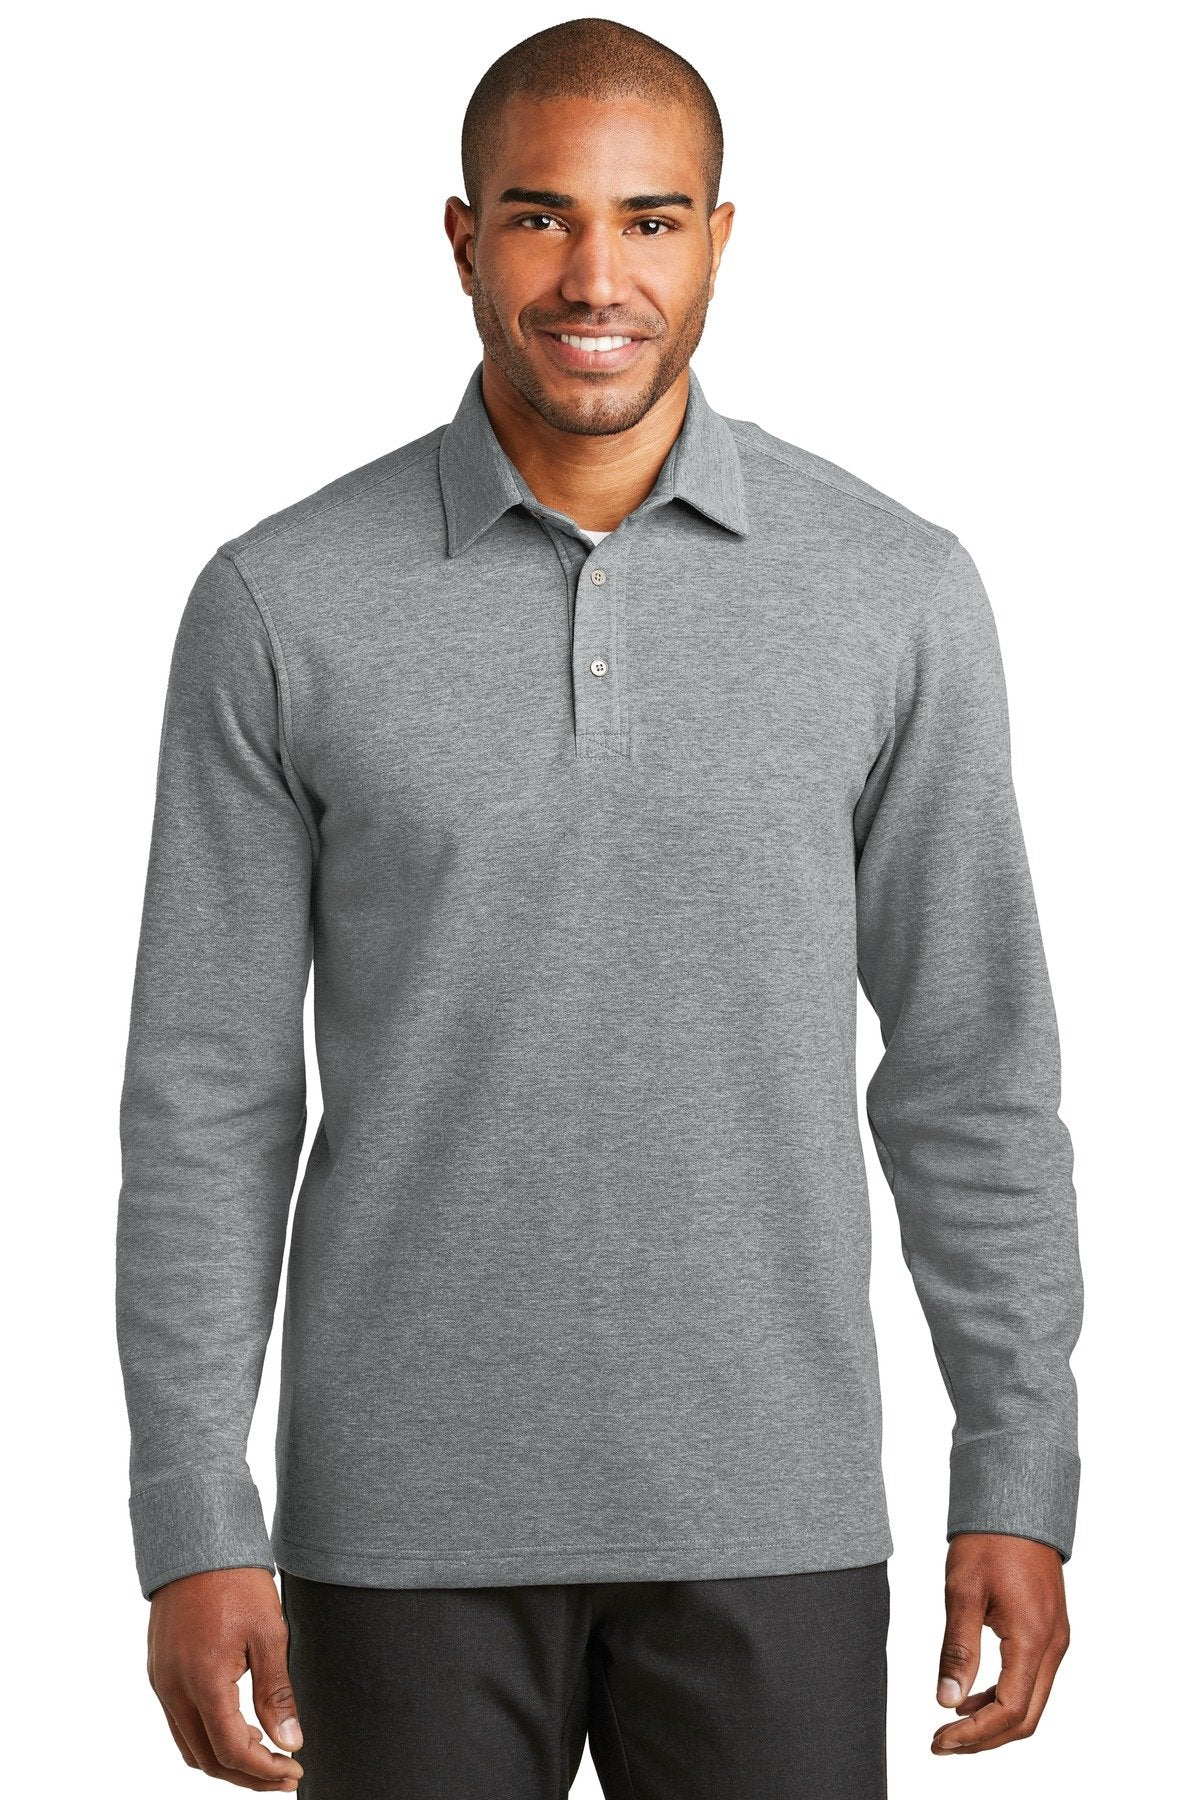 Medium Heather Grey/ Charcoal Heather - Port Authority K808